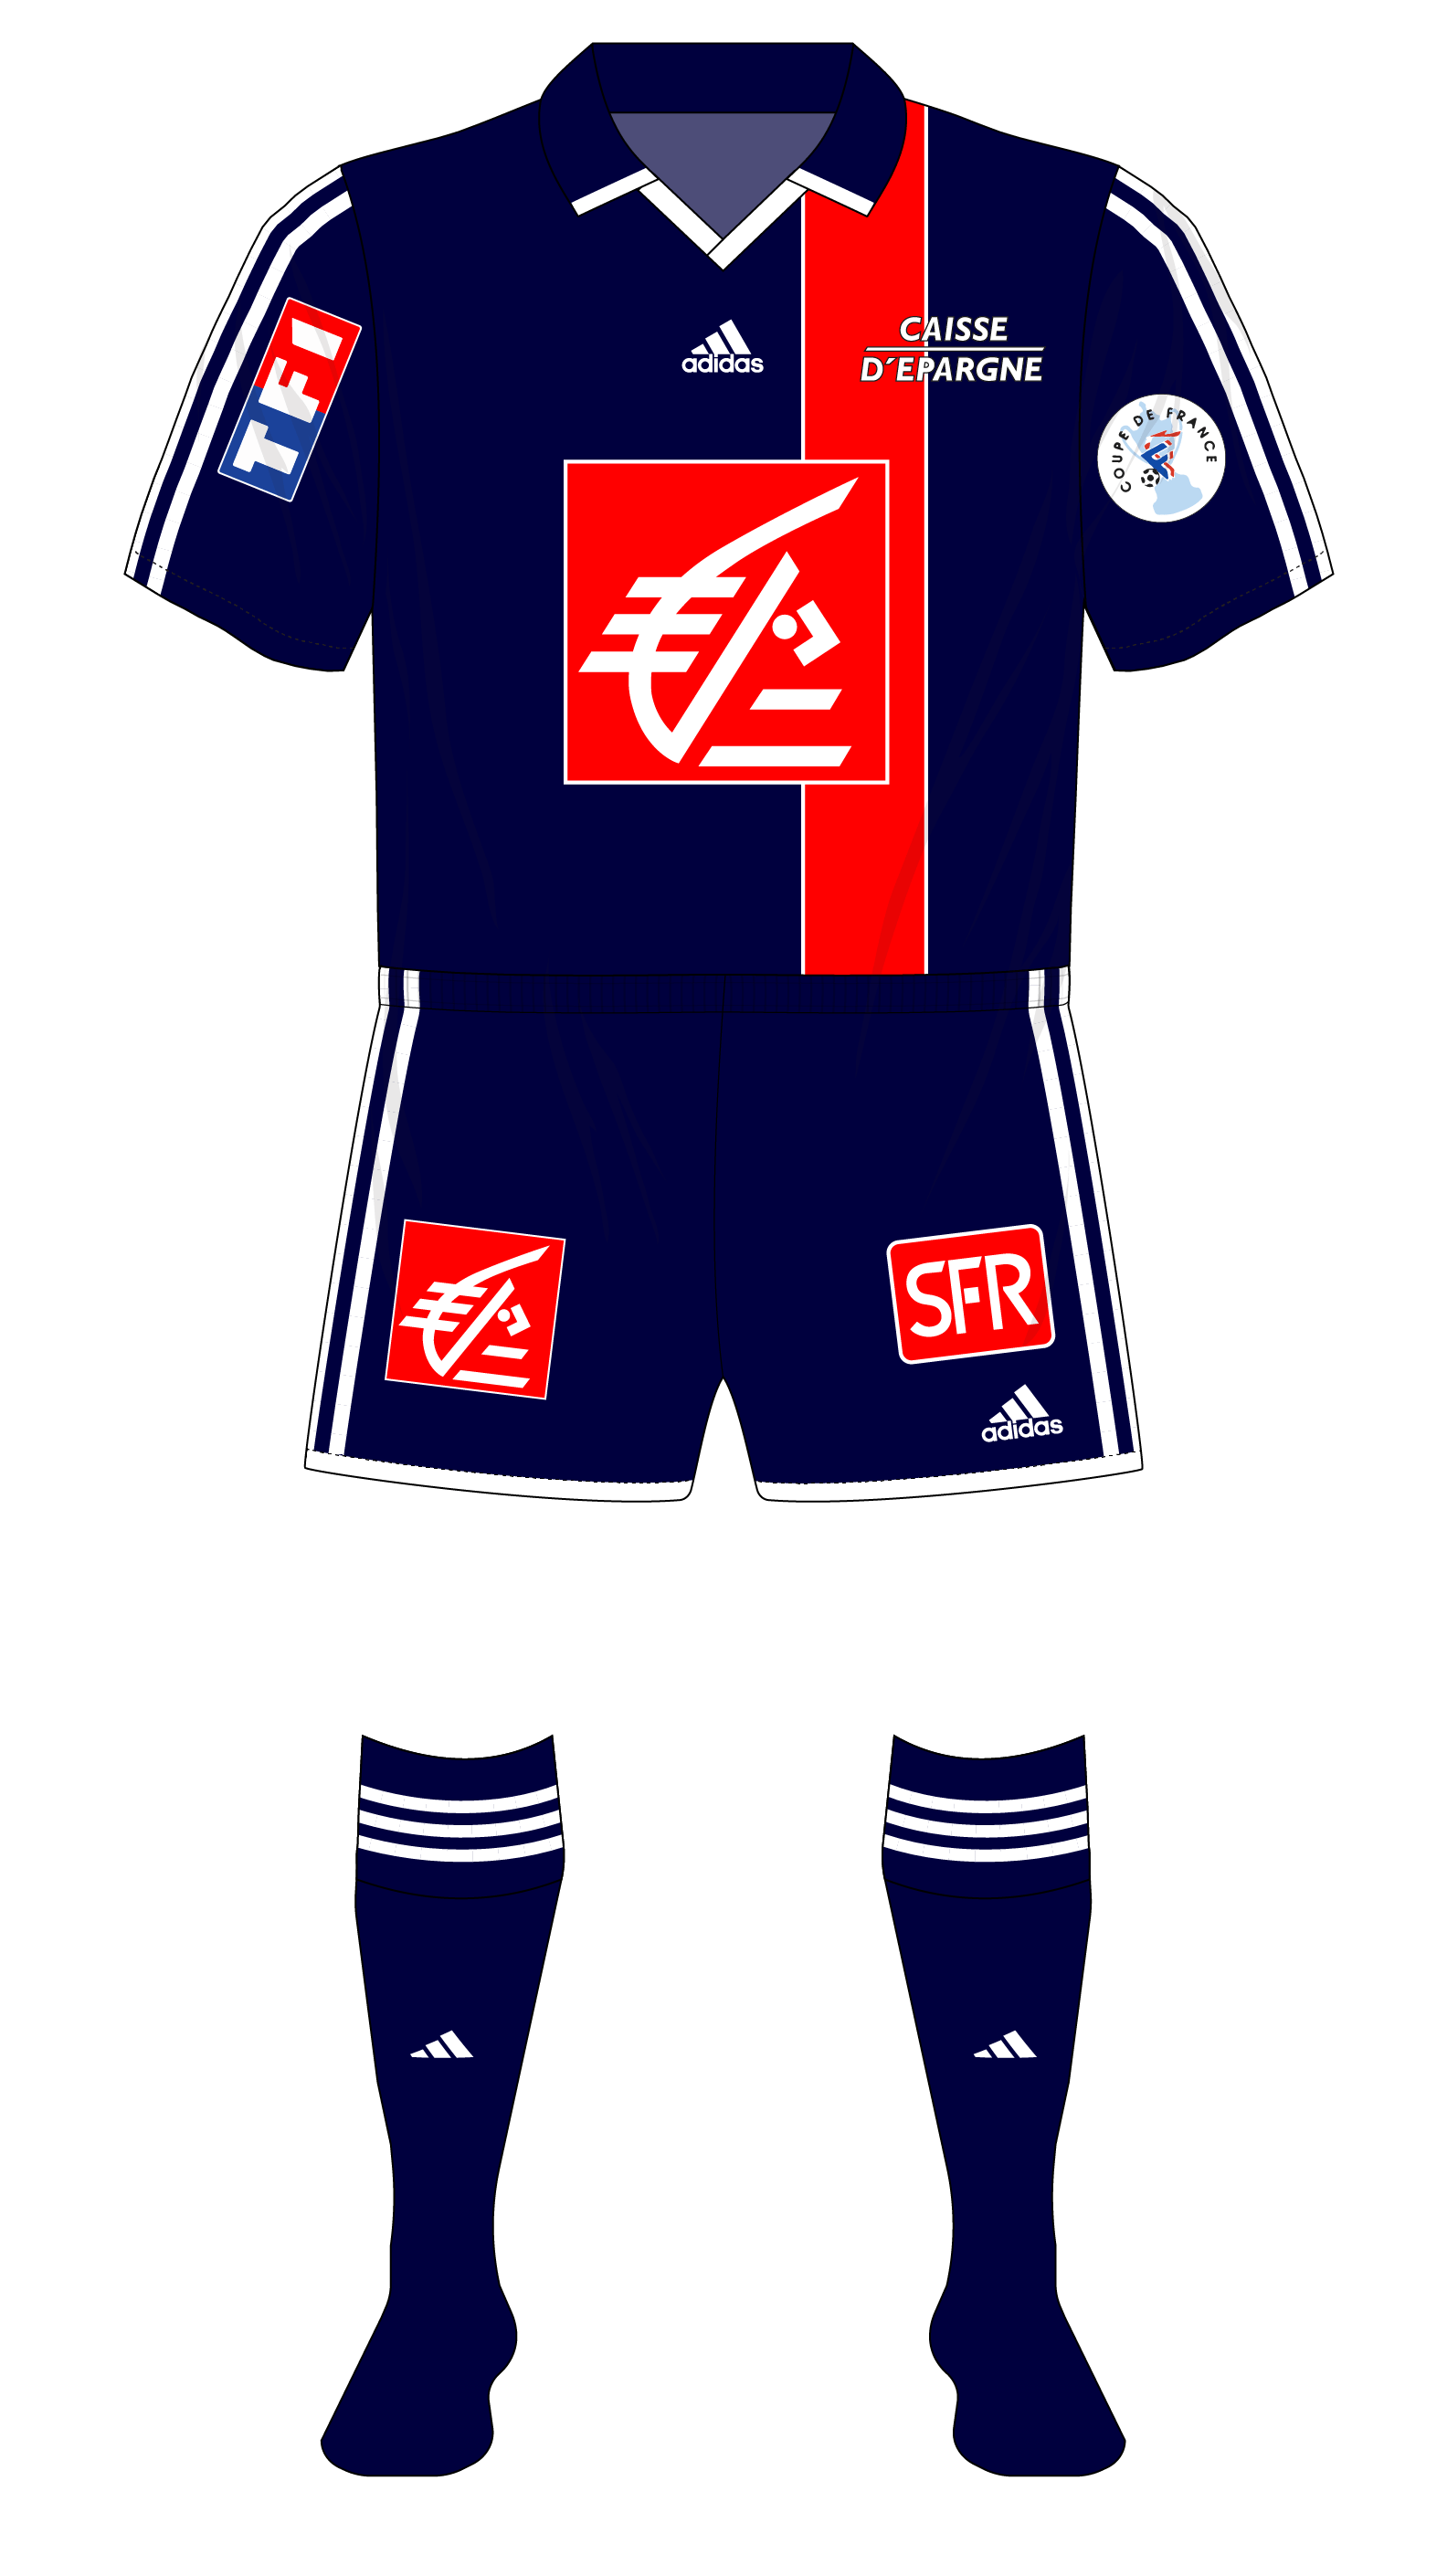 Paris St Germain's adidas cup runneth over – Museum of Jerseys